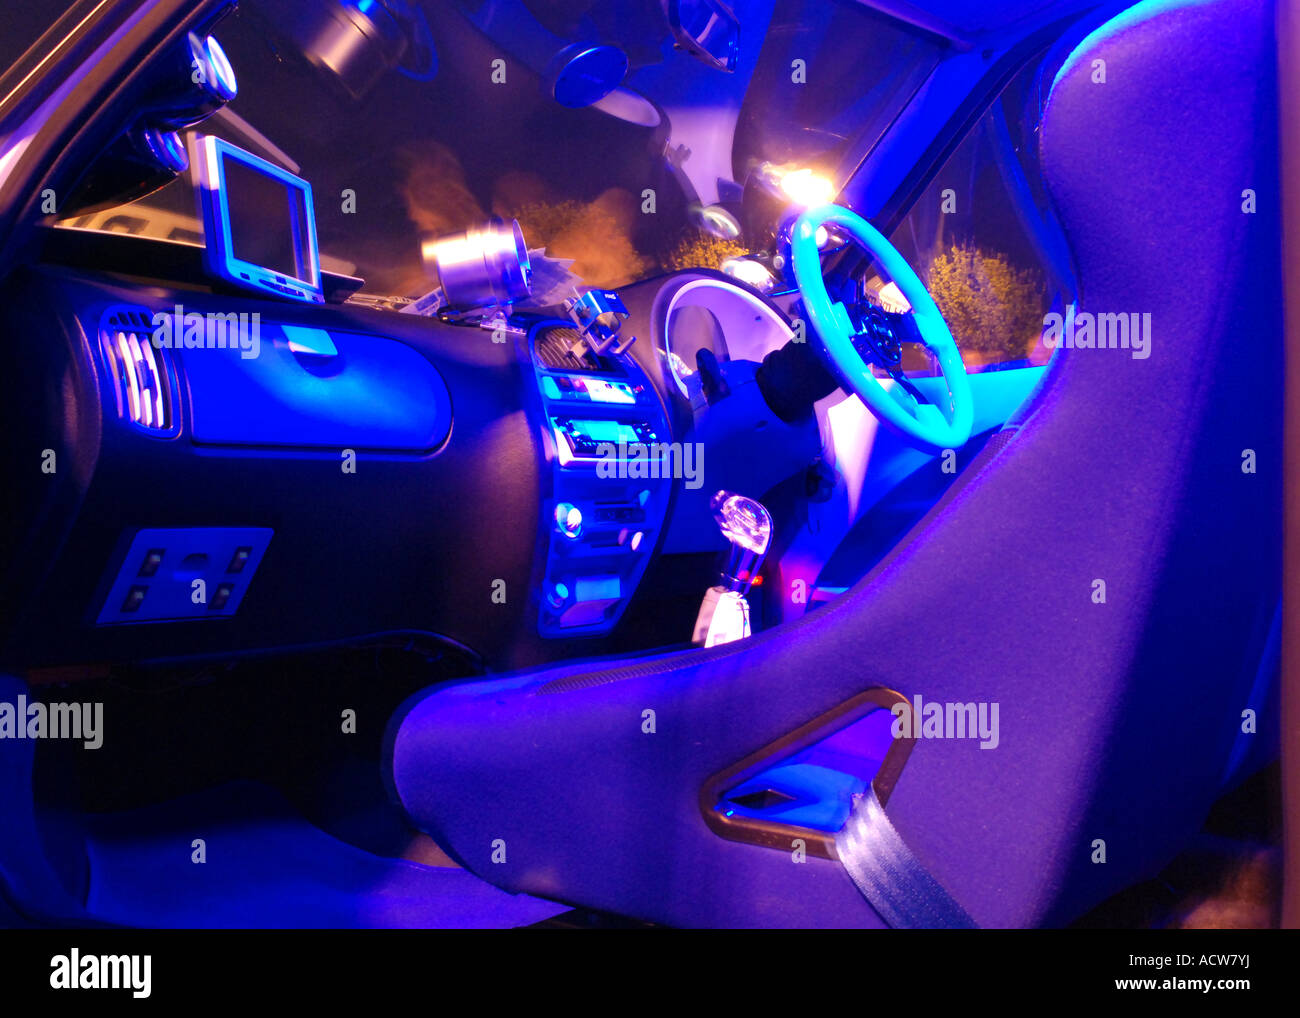 Customized Car Interior With Neon Stock Photo 13233461 Alamy